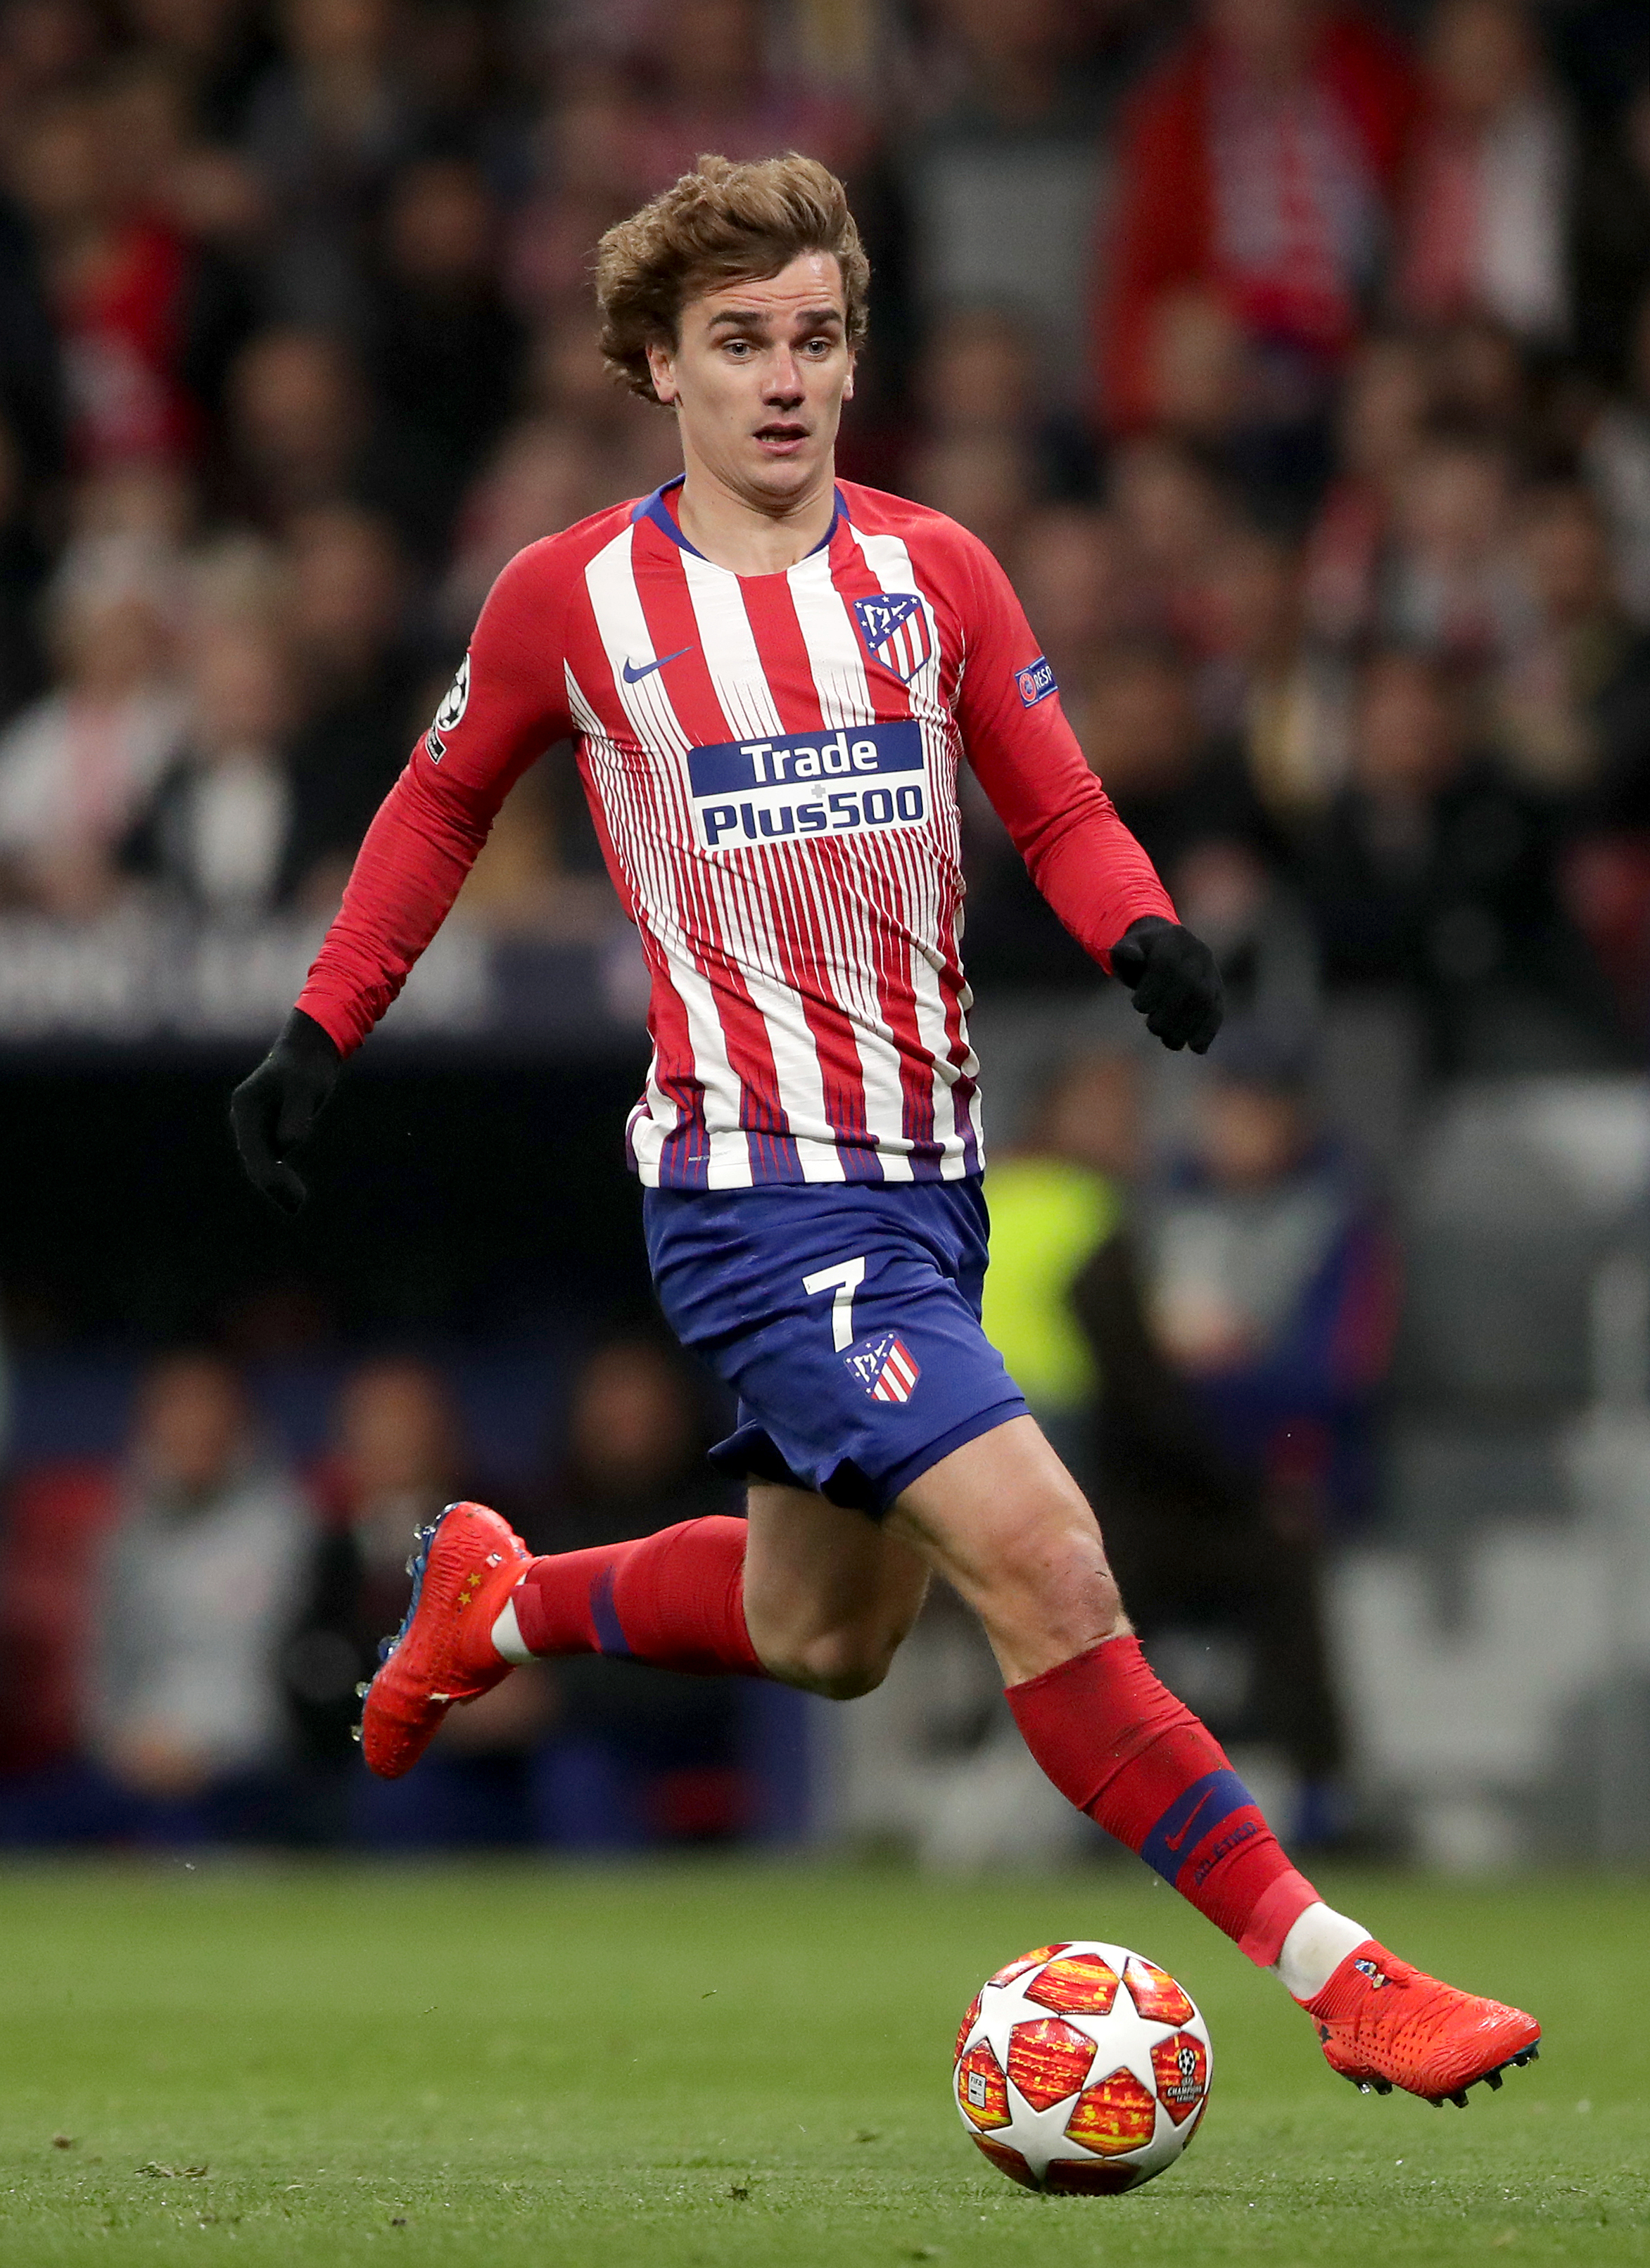 Antoine Griezmann in action (Image Credit: PA)